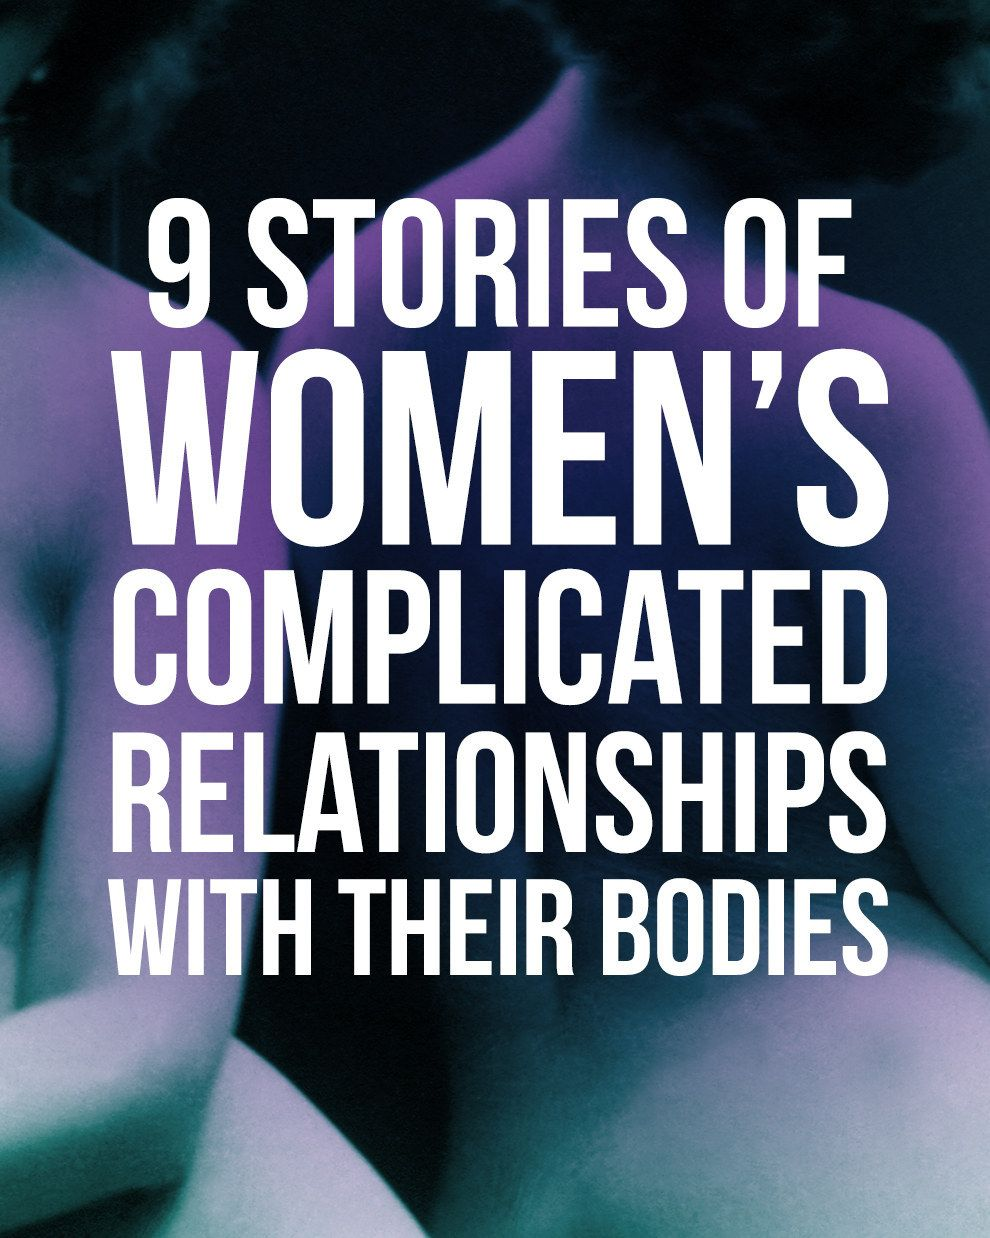 9 Stories Of Women's Complicated Relationships With Their Bodies